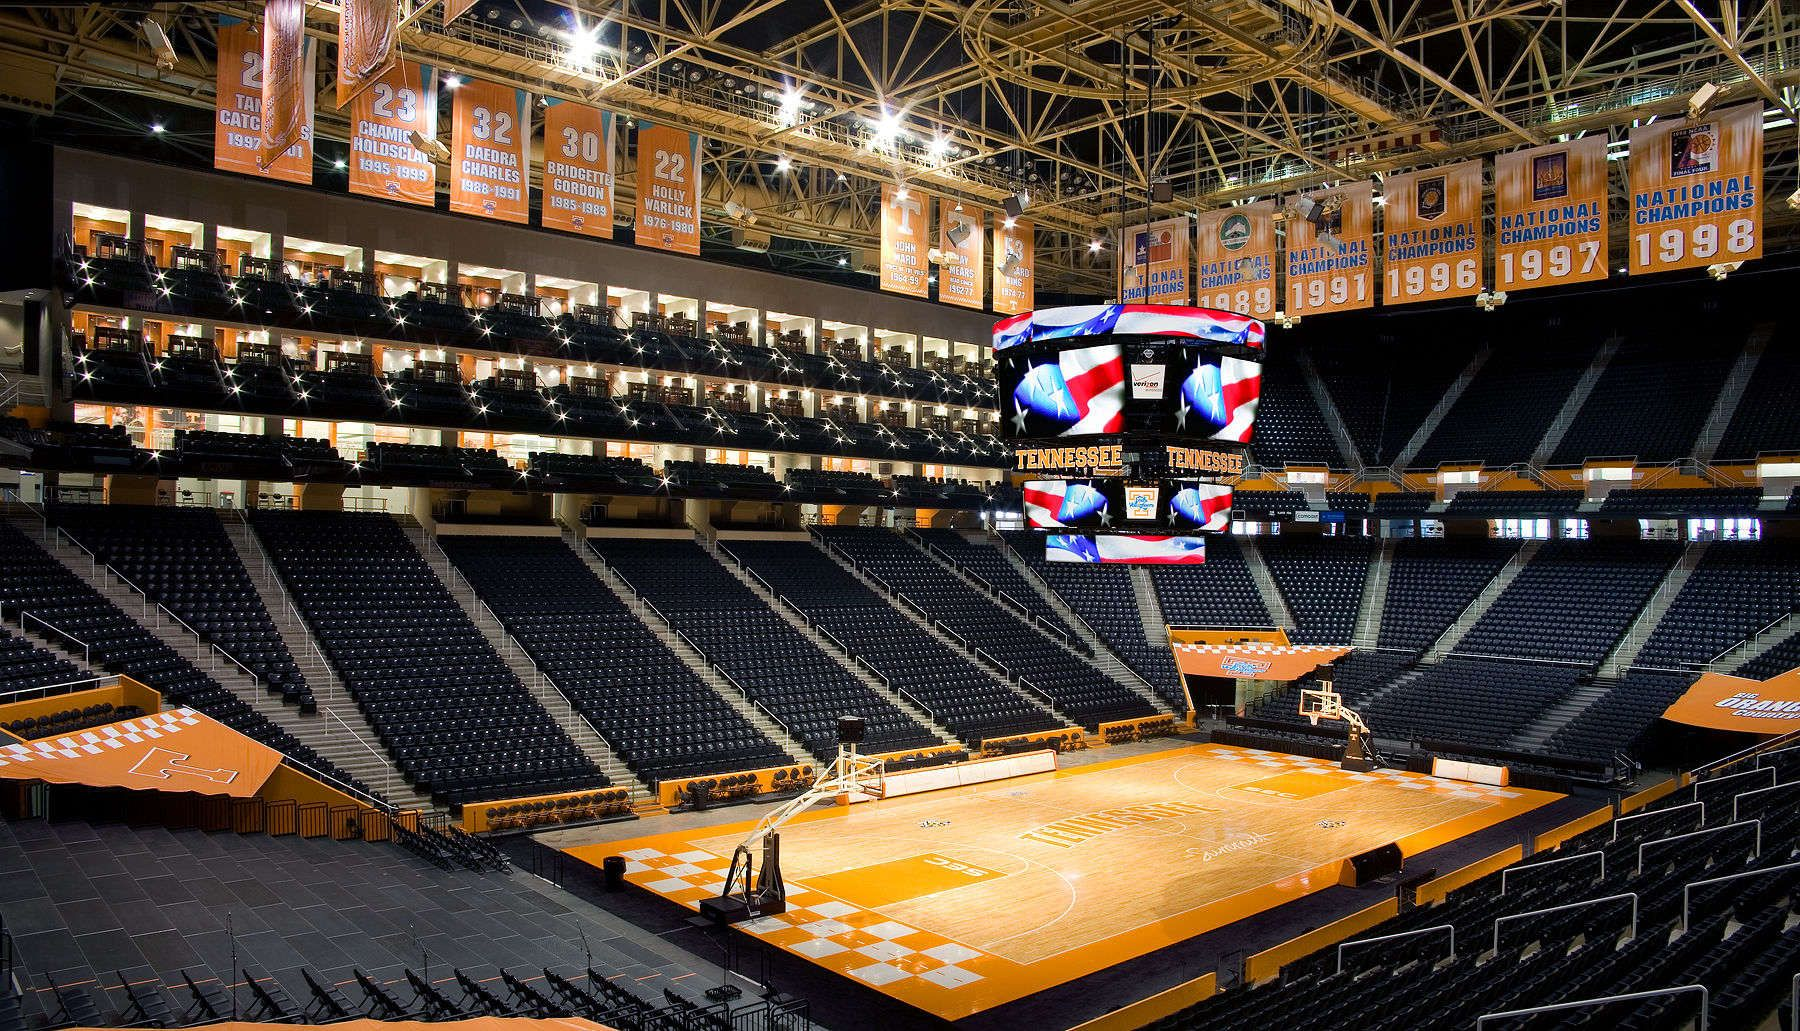 ThompsonBowling Arena, Home of the Tennessee Volunteers